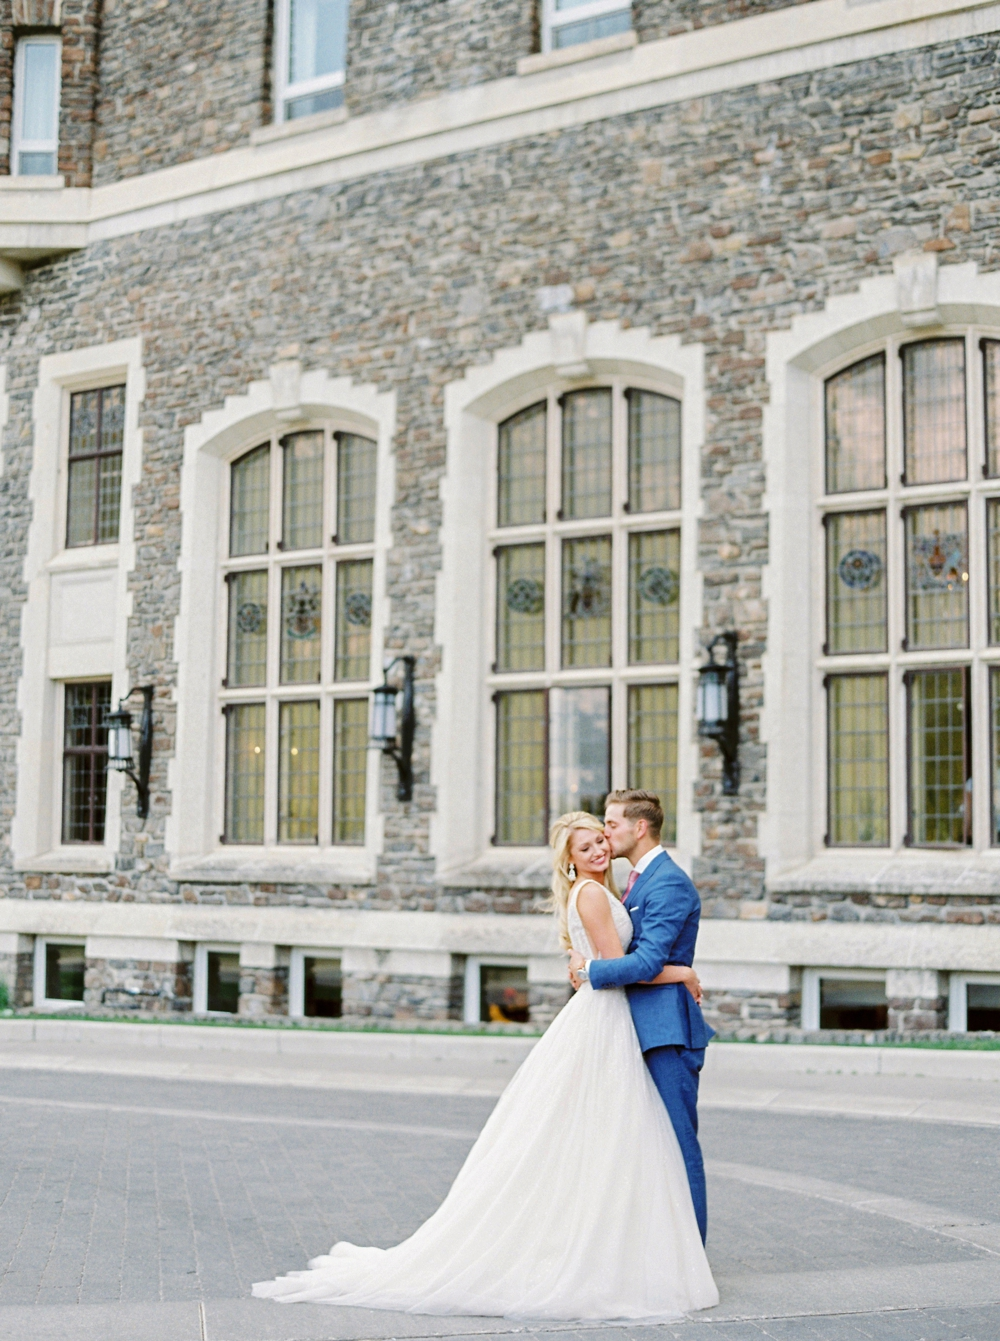 Bride and Groom portrait at Fairmont Banff Springs Hotel | Banff Rocky Mountain Wedding Photographers | Justine Milton fine art film photography